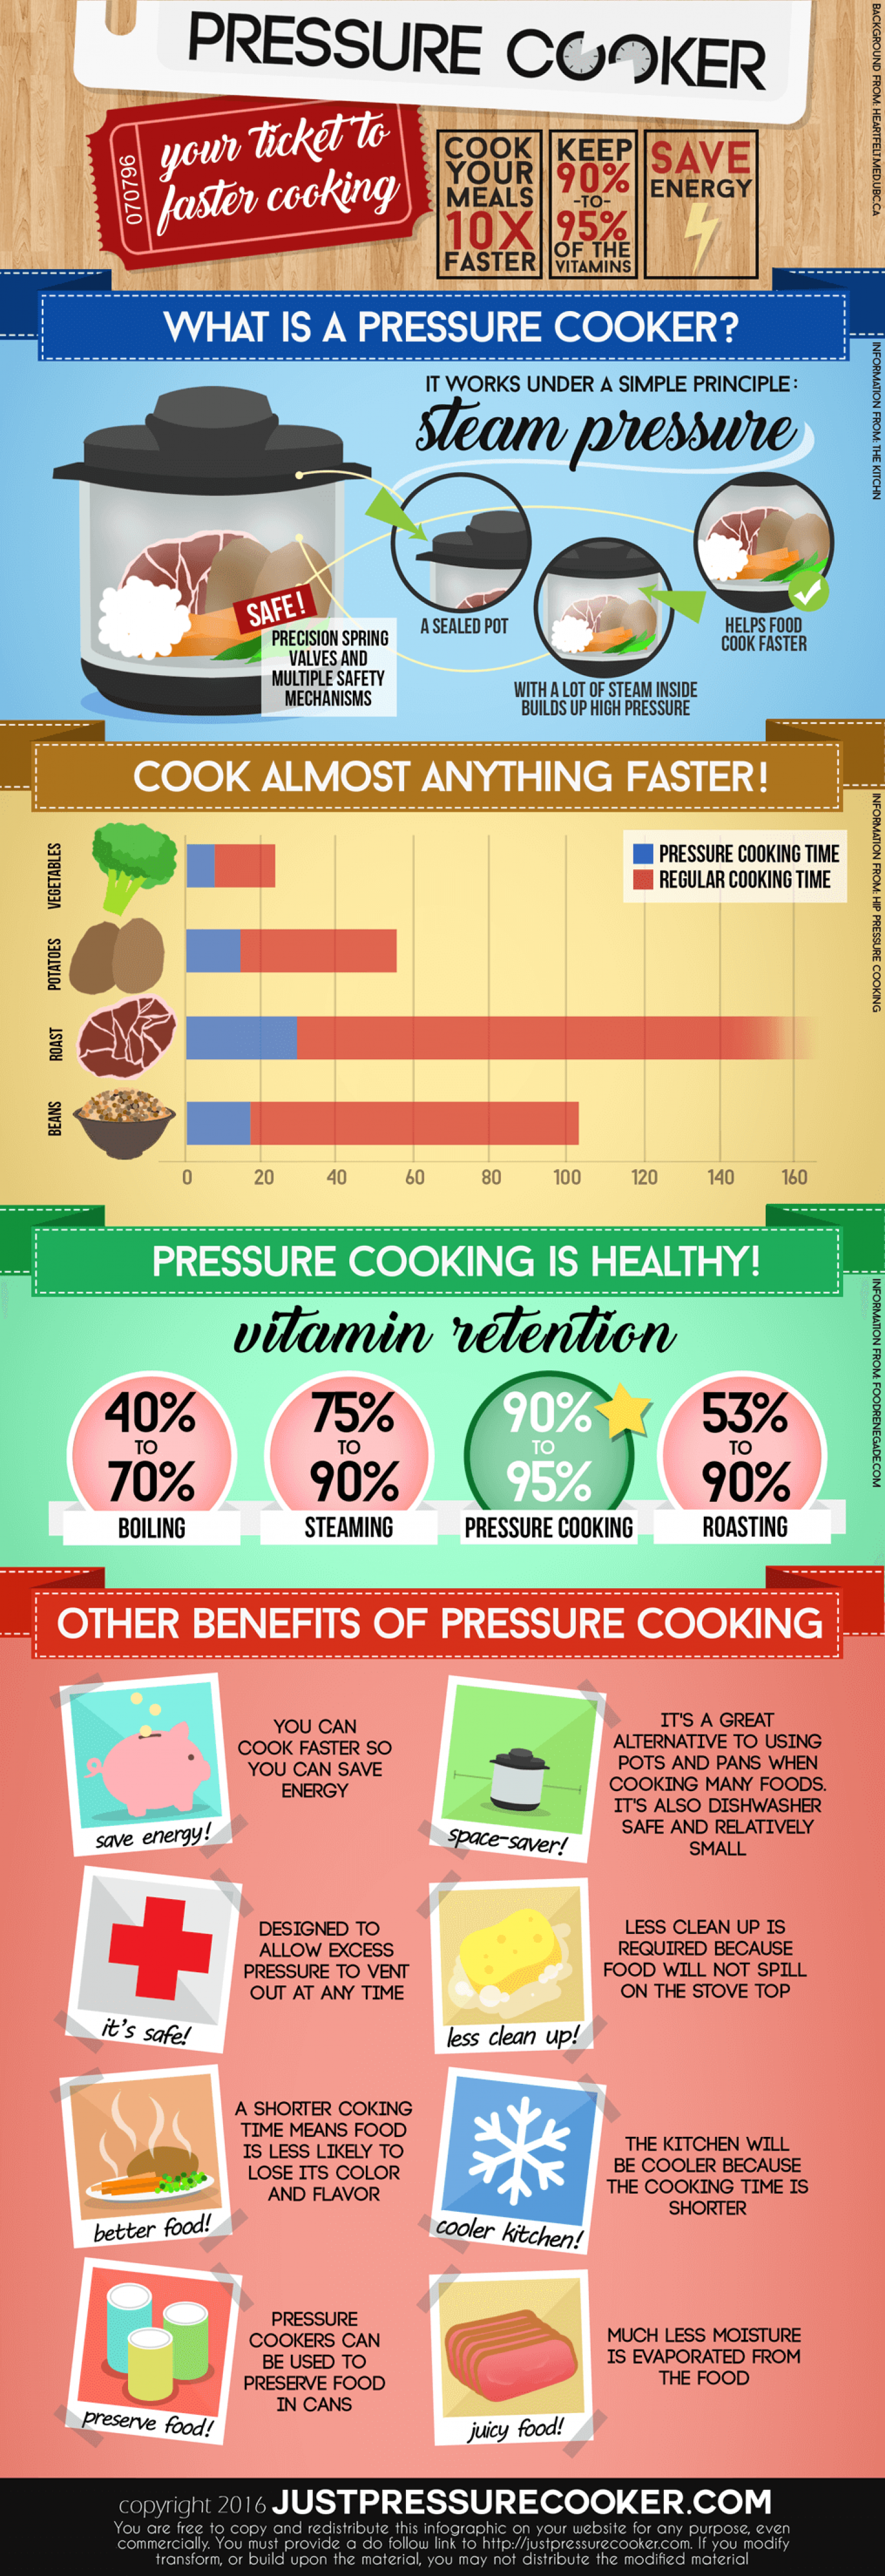 Advantages of Pressure Cookers Infographic